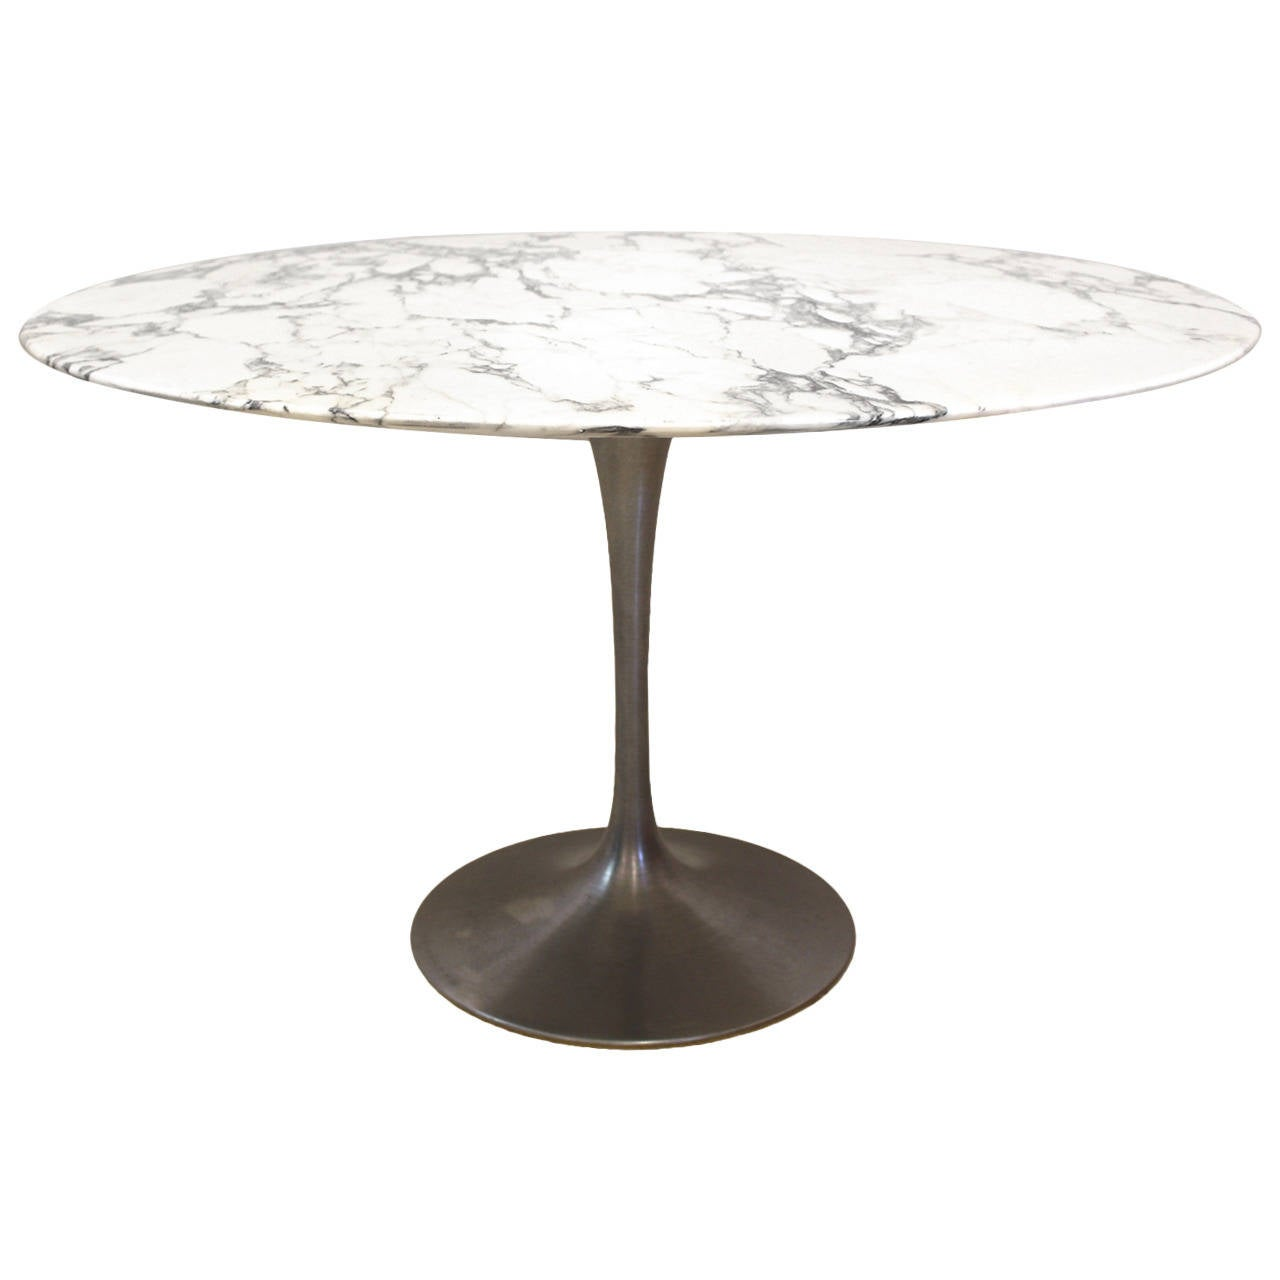 Tulip Table And Chairs Tulip Dining Table By Eero Saarinen 1956 At 1stdibs